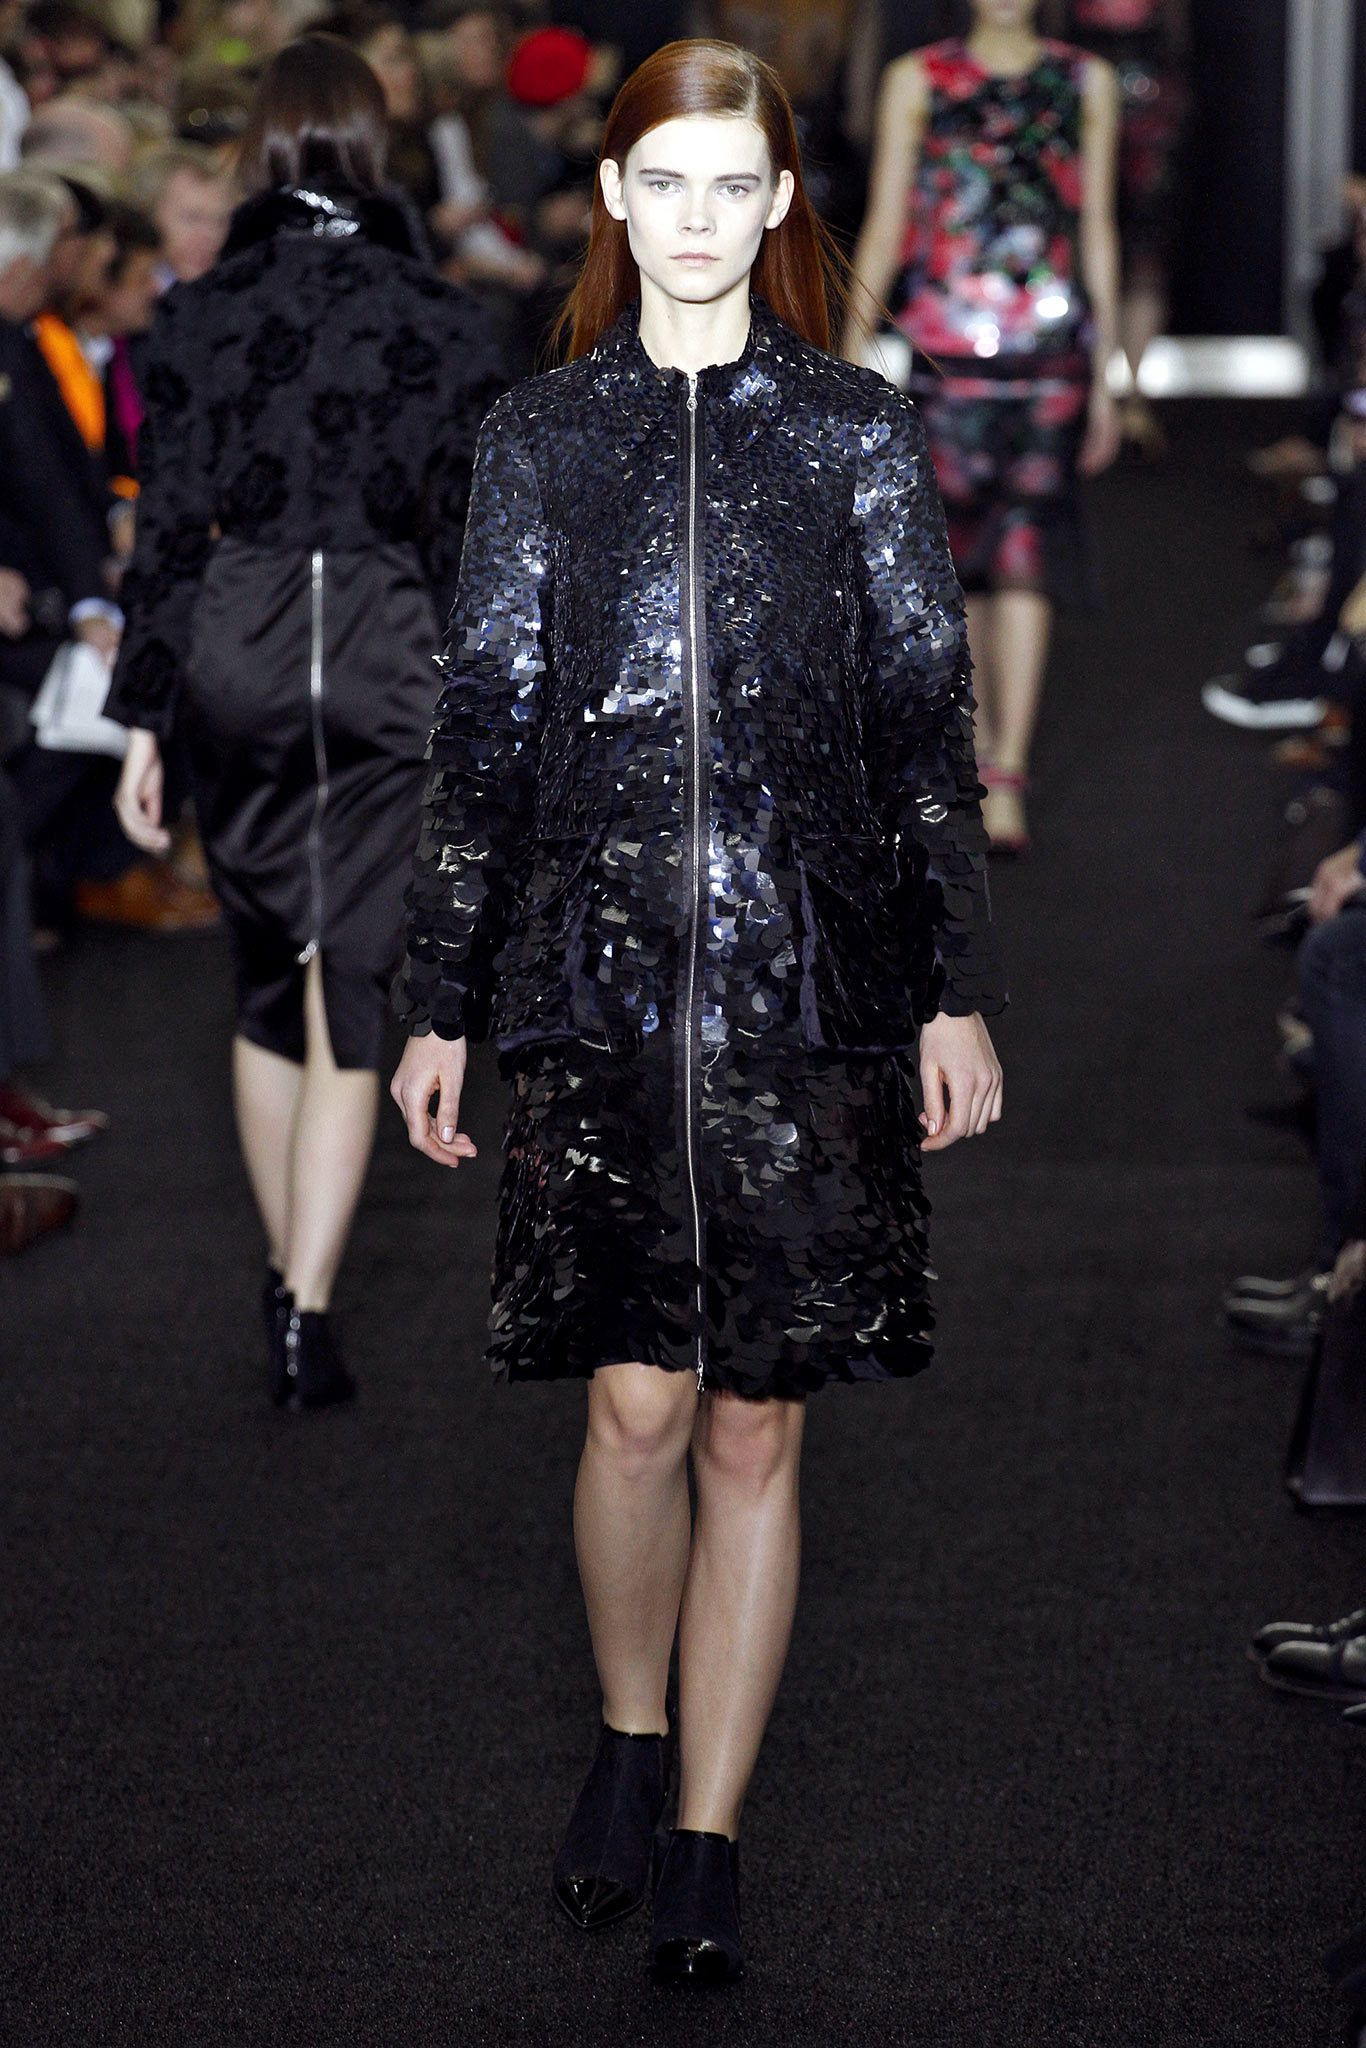 Erdem Fall 2013 Ready-to-Wear Collection Slideshow on Style.com